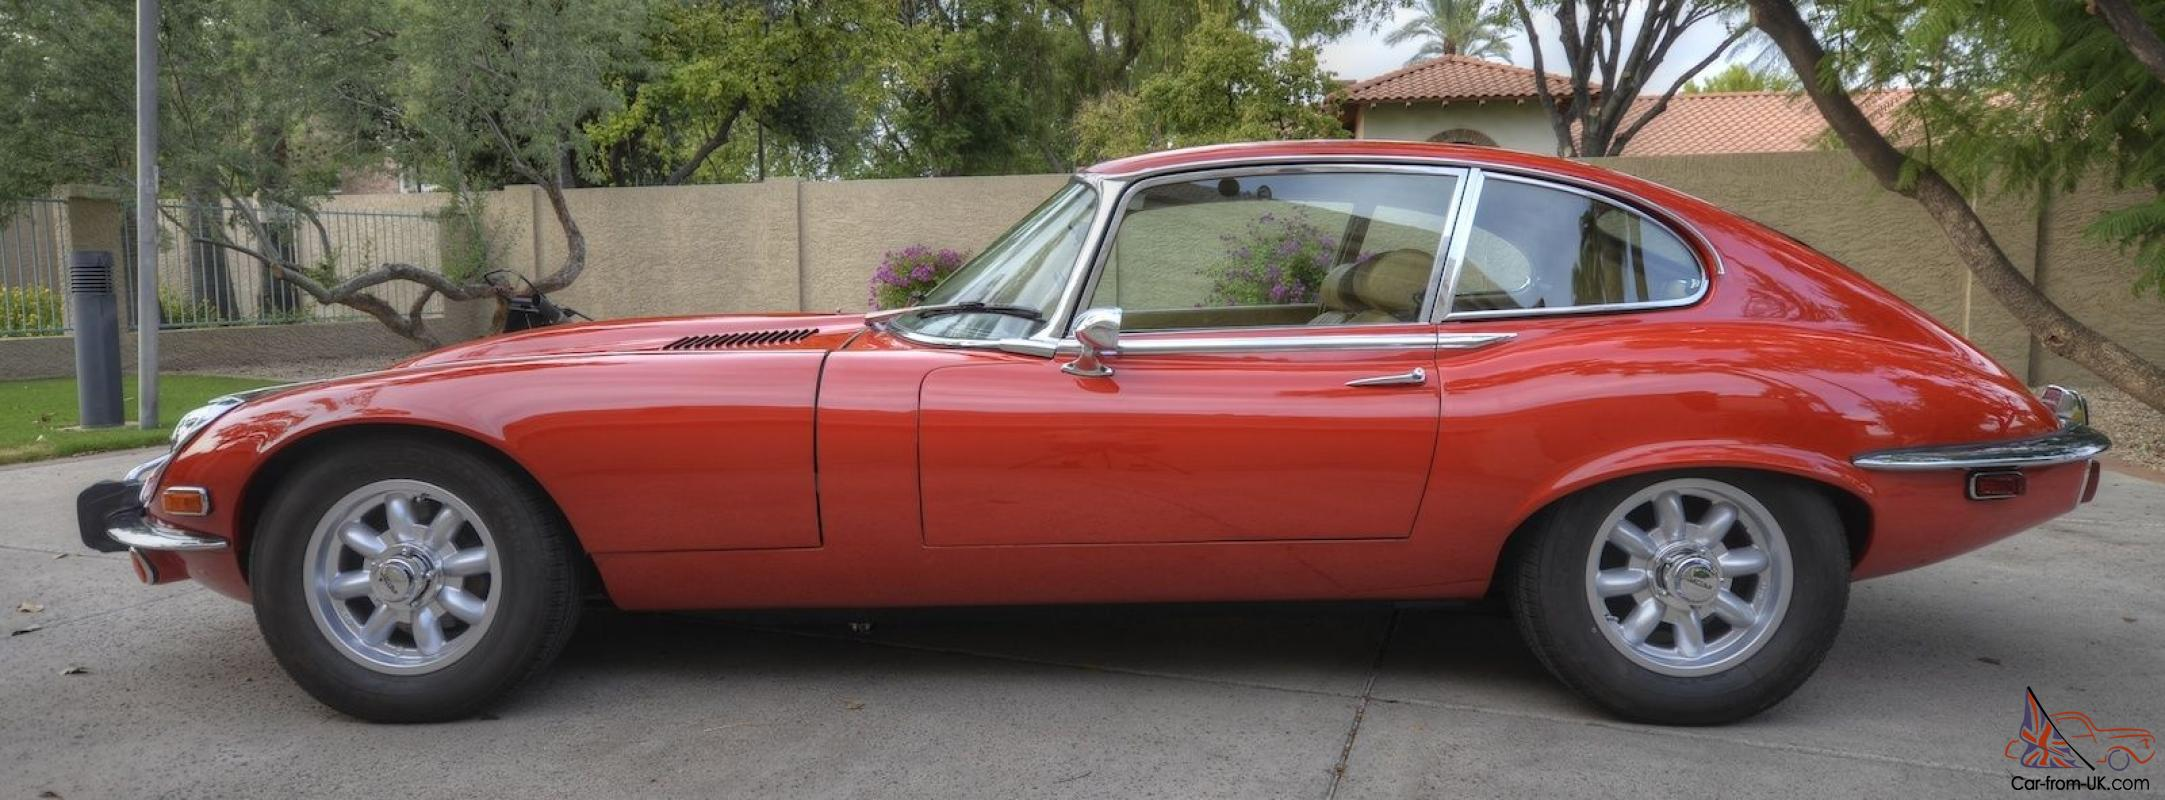 A 1969 Jaguar E-type 2+2 Coupé. Author's personal favourite of all the E-type iterations. The Minilites are preferred over the traditional wire wheels. (Picture courtesy of Ebay)